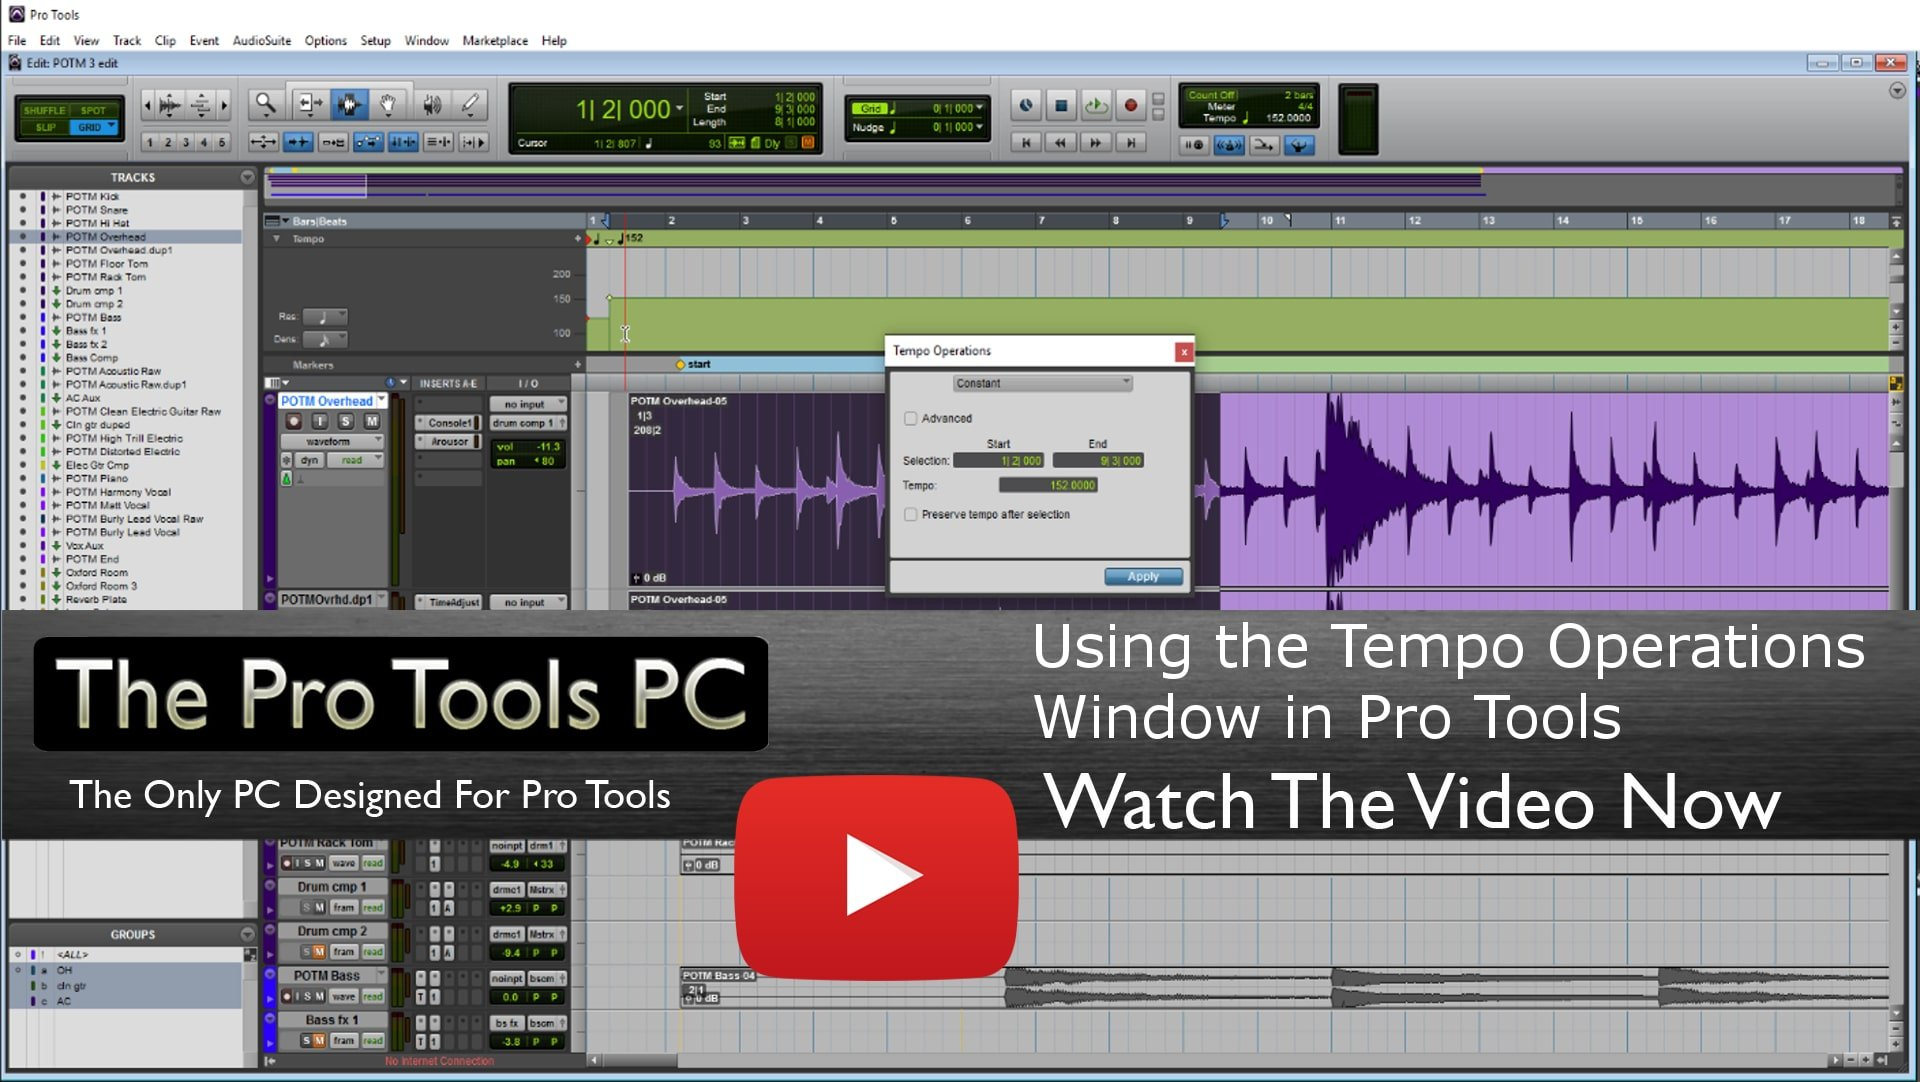 Pro Tools Tempo Operations Window Video Tutorial